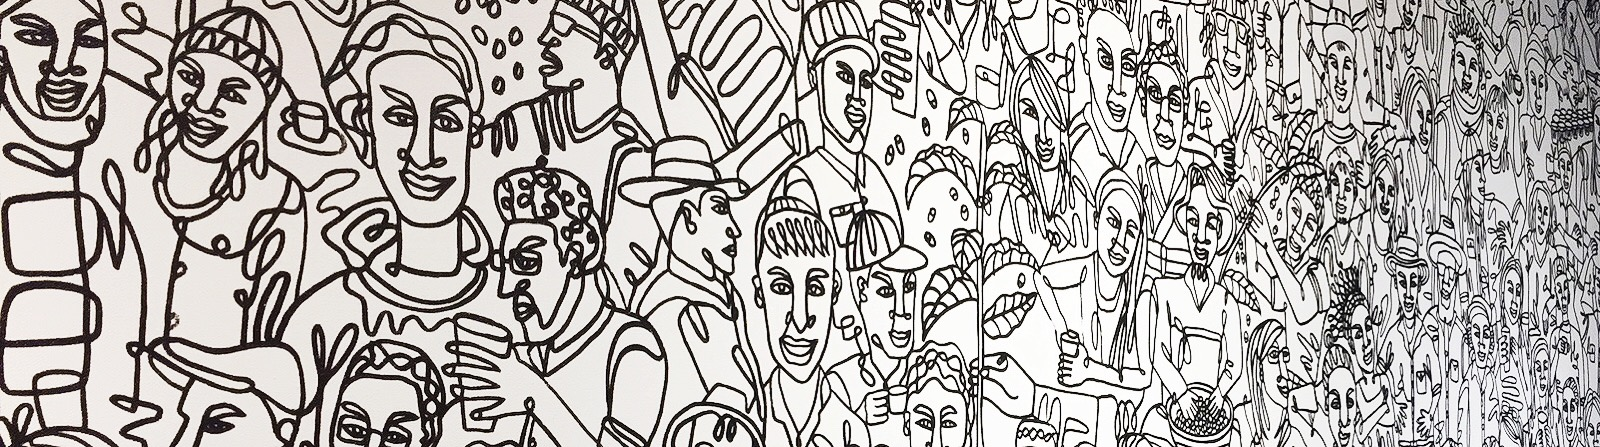 A mural of people around the world inside the Hilton Fort Wayne Starbucks at 1020 S. Calhoun St. <span class='image-credits'>By Kara Hackett</span>